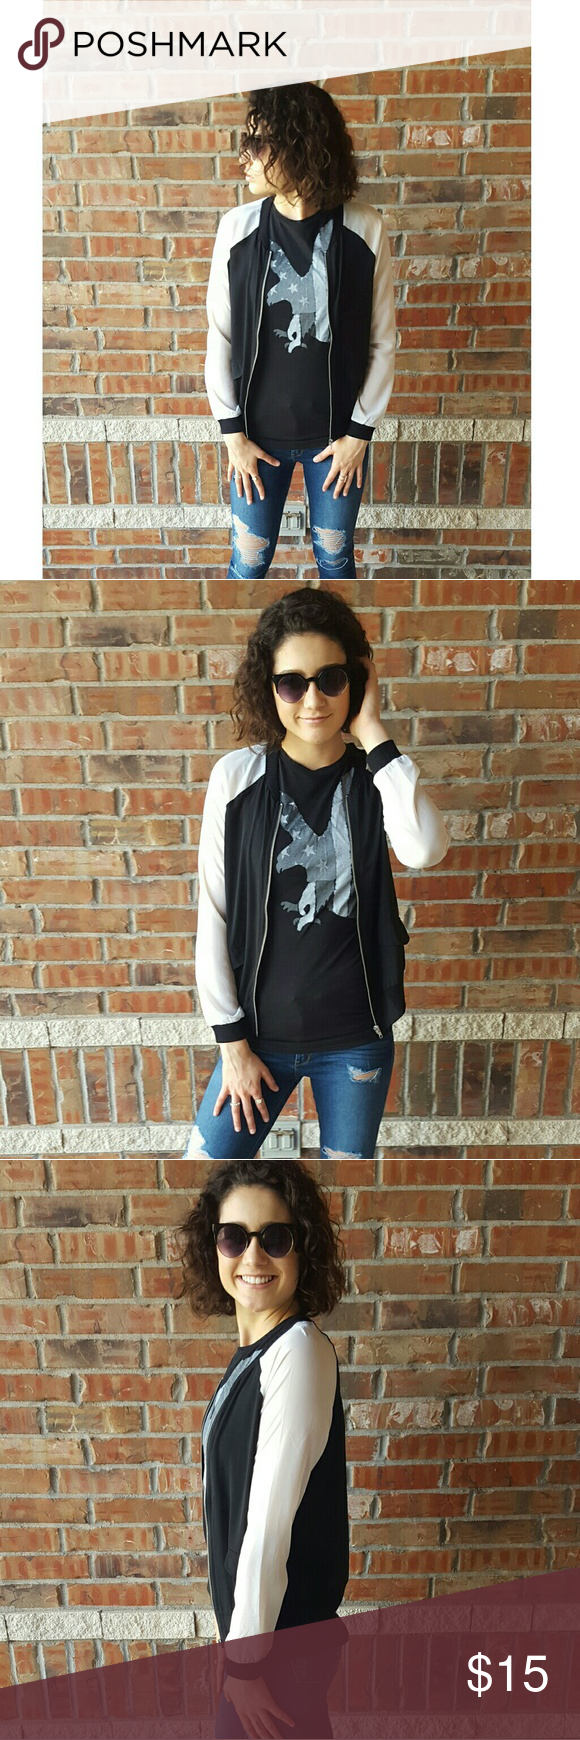 Bomber Jacket >Black and white bomber jacket >Sheer material >Zips up >Worn once, perfect condition >Only the jacket is available in this listing. The tank top is available in a separate listing. Jackets & Coats